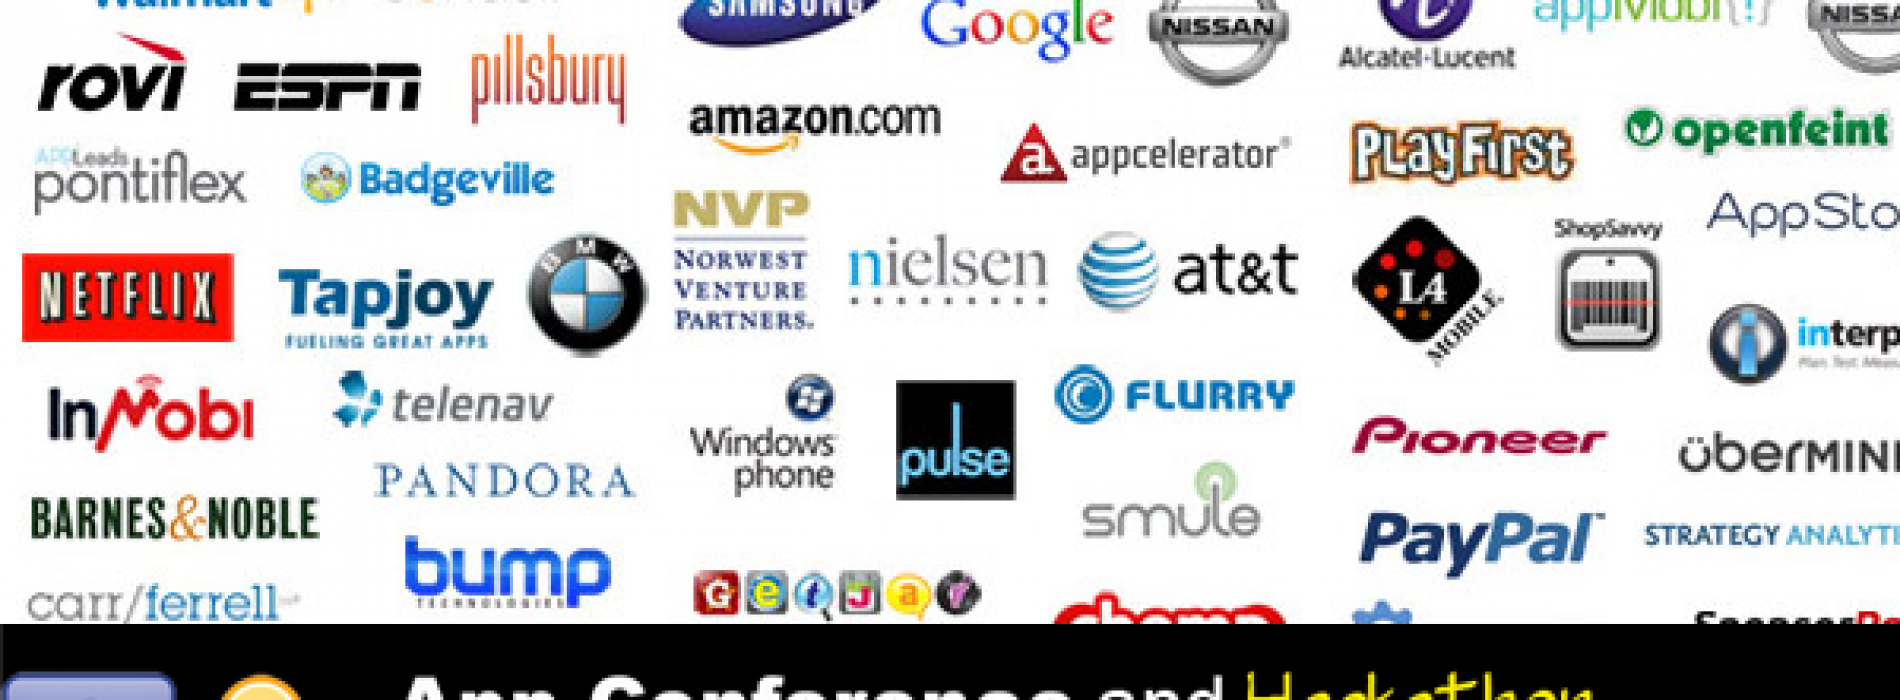 App Conference and Hackathon arrives this week